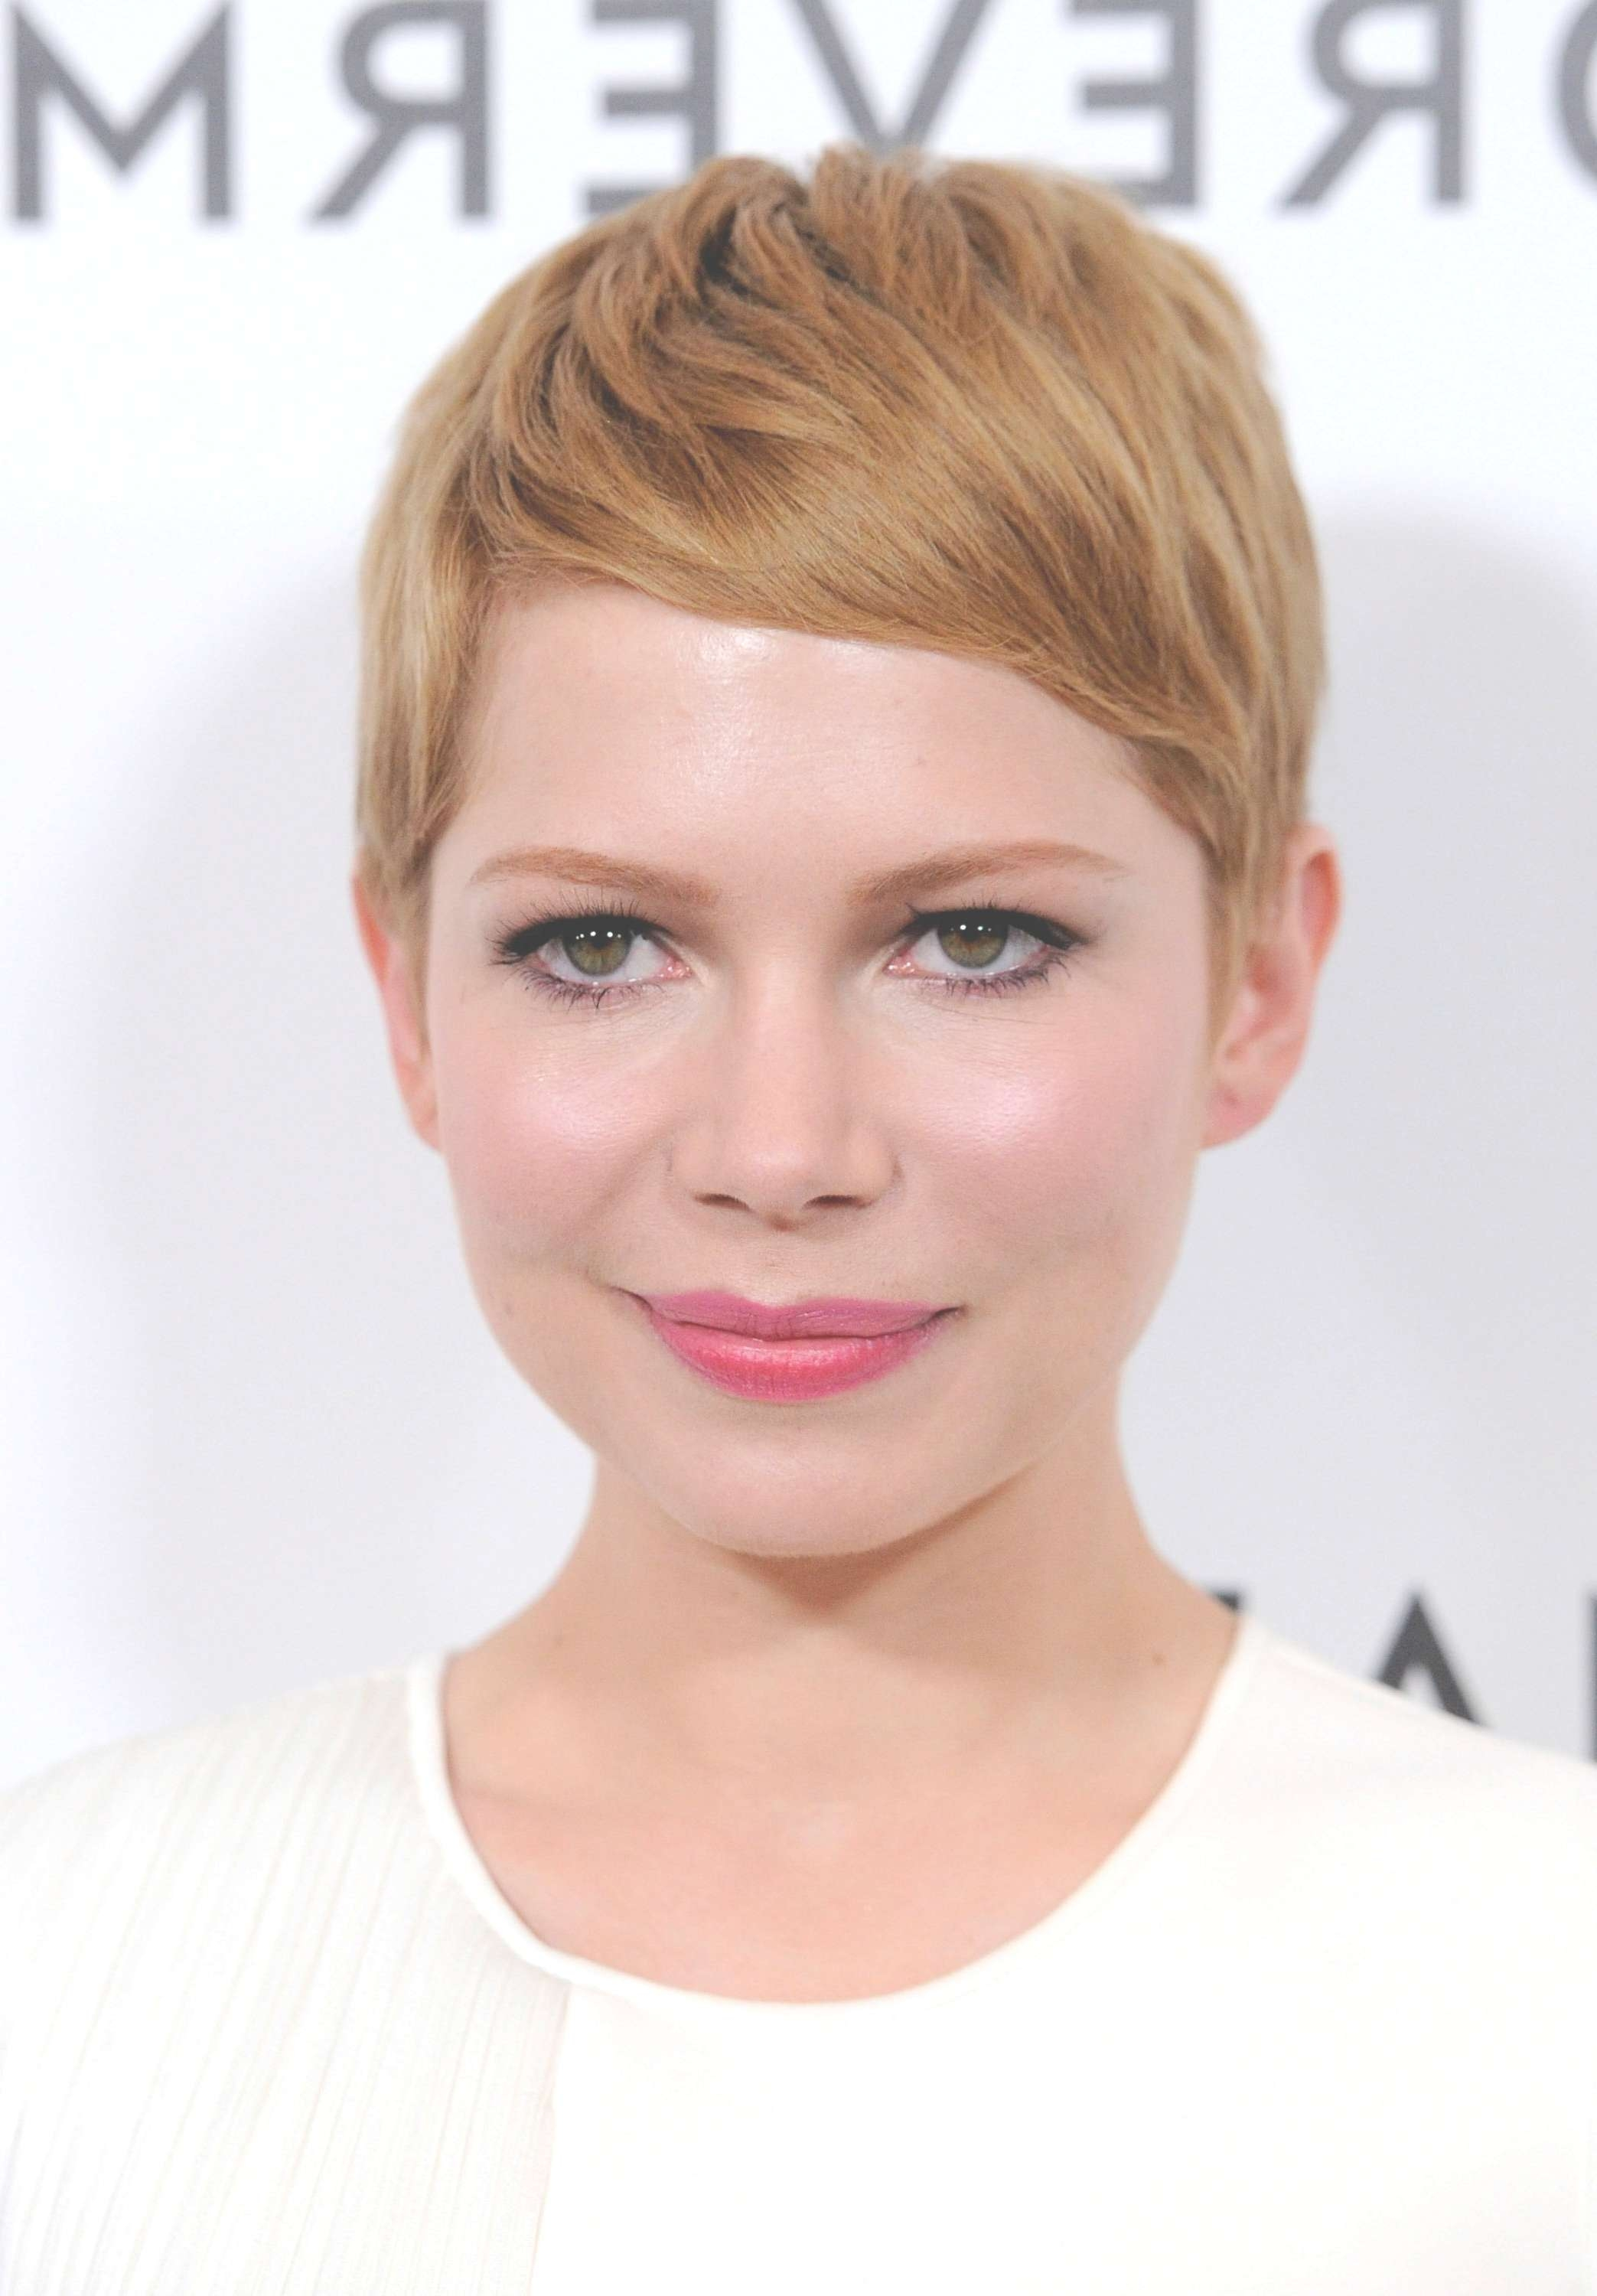 40 Best Short Pixie Cut Hairstyles 2018 – Cute Pixie Haircuts For In Latest Actresses With Pixie Hairstyles (View 3 of 15)